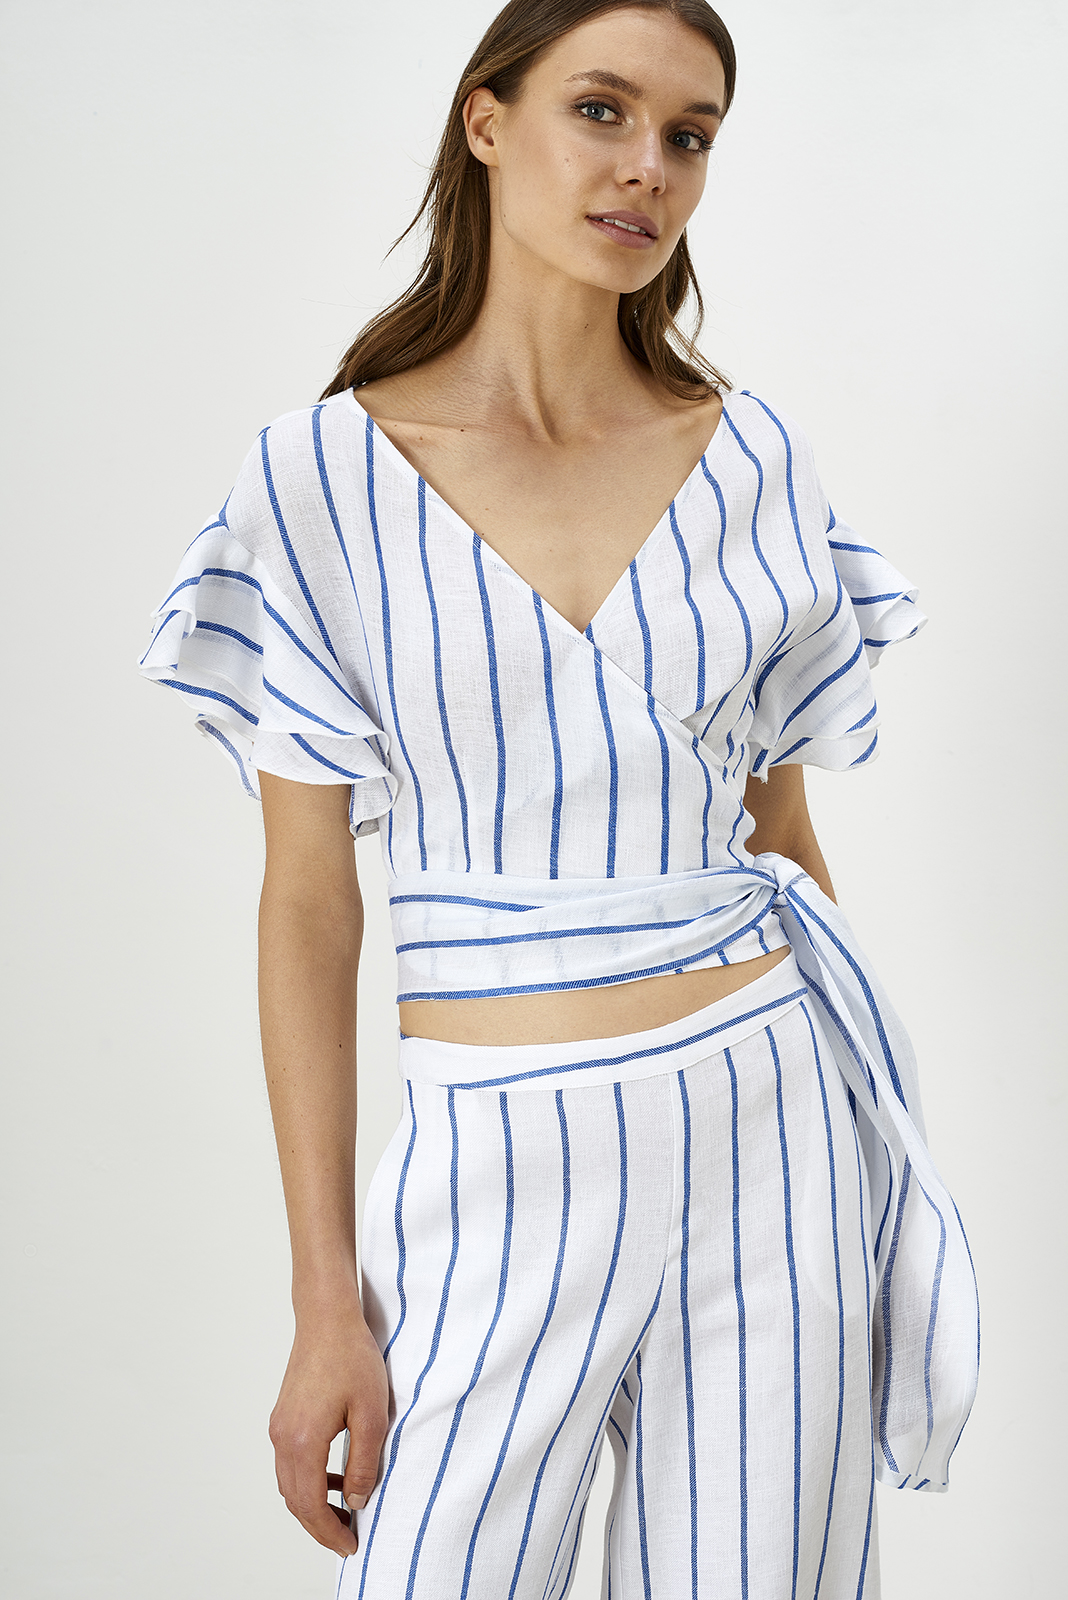 White-blue ocean stripes